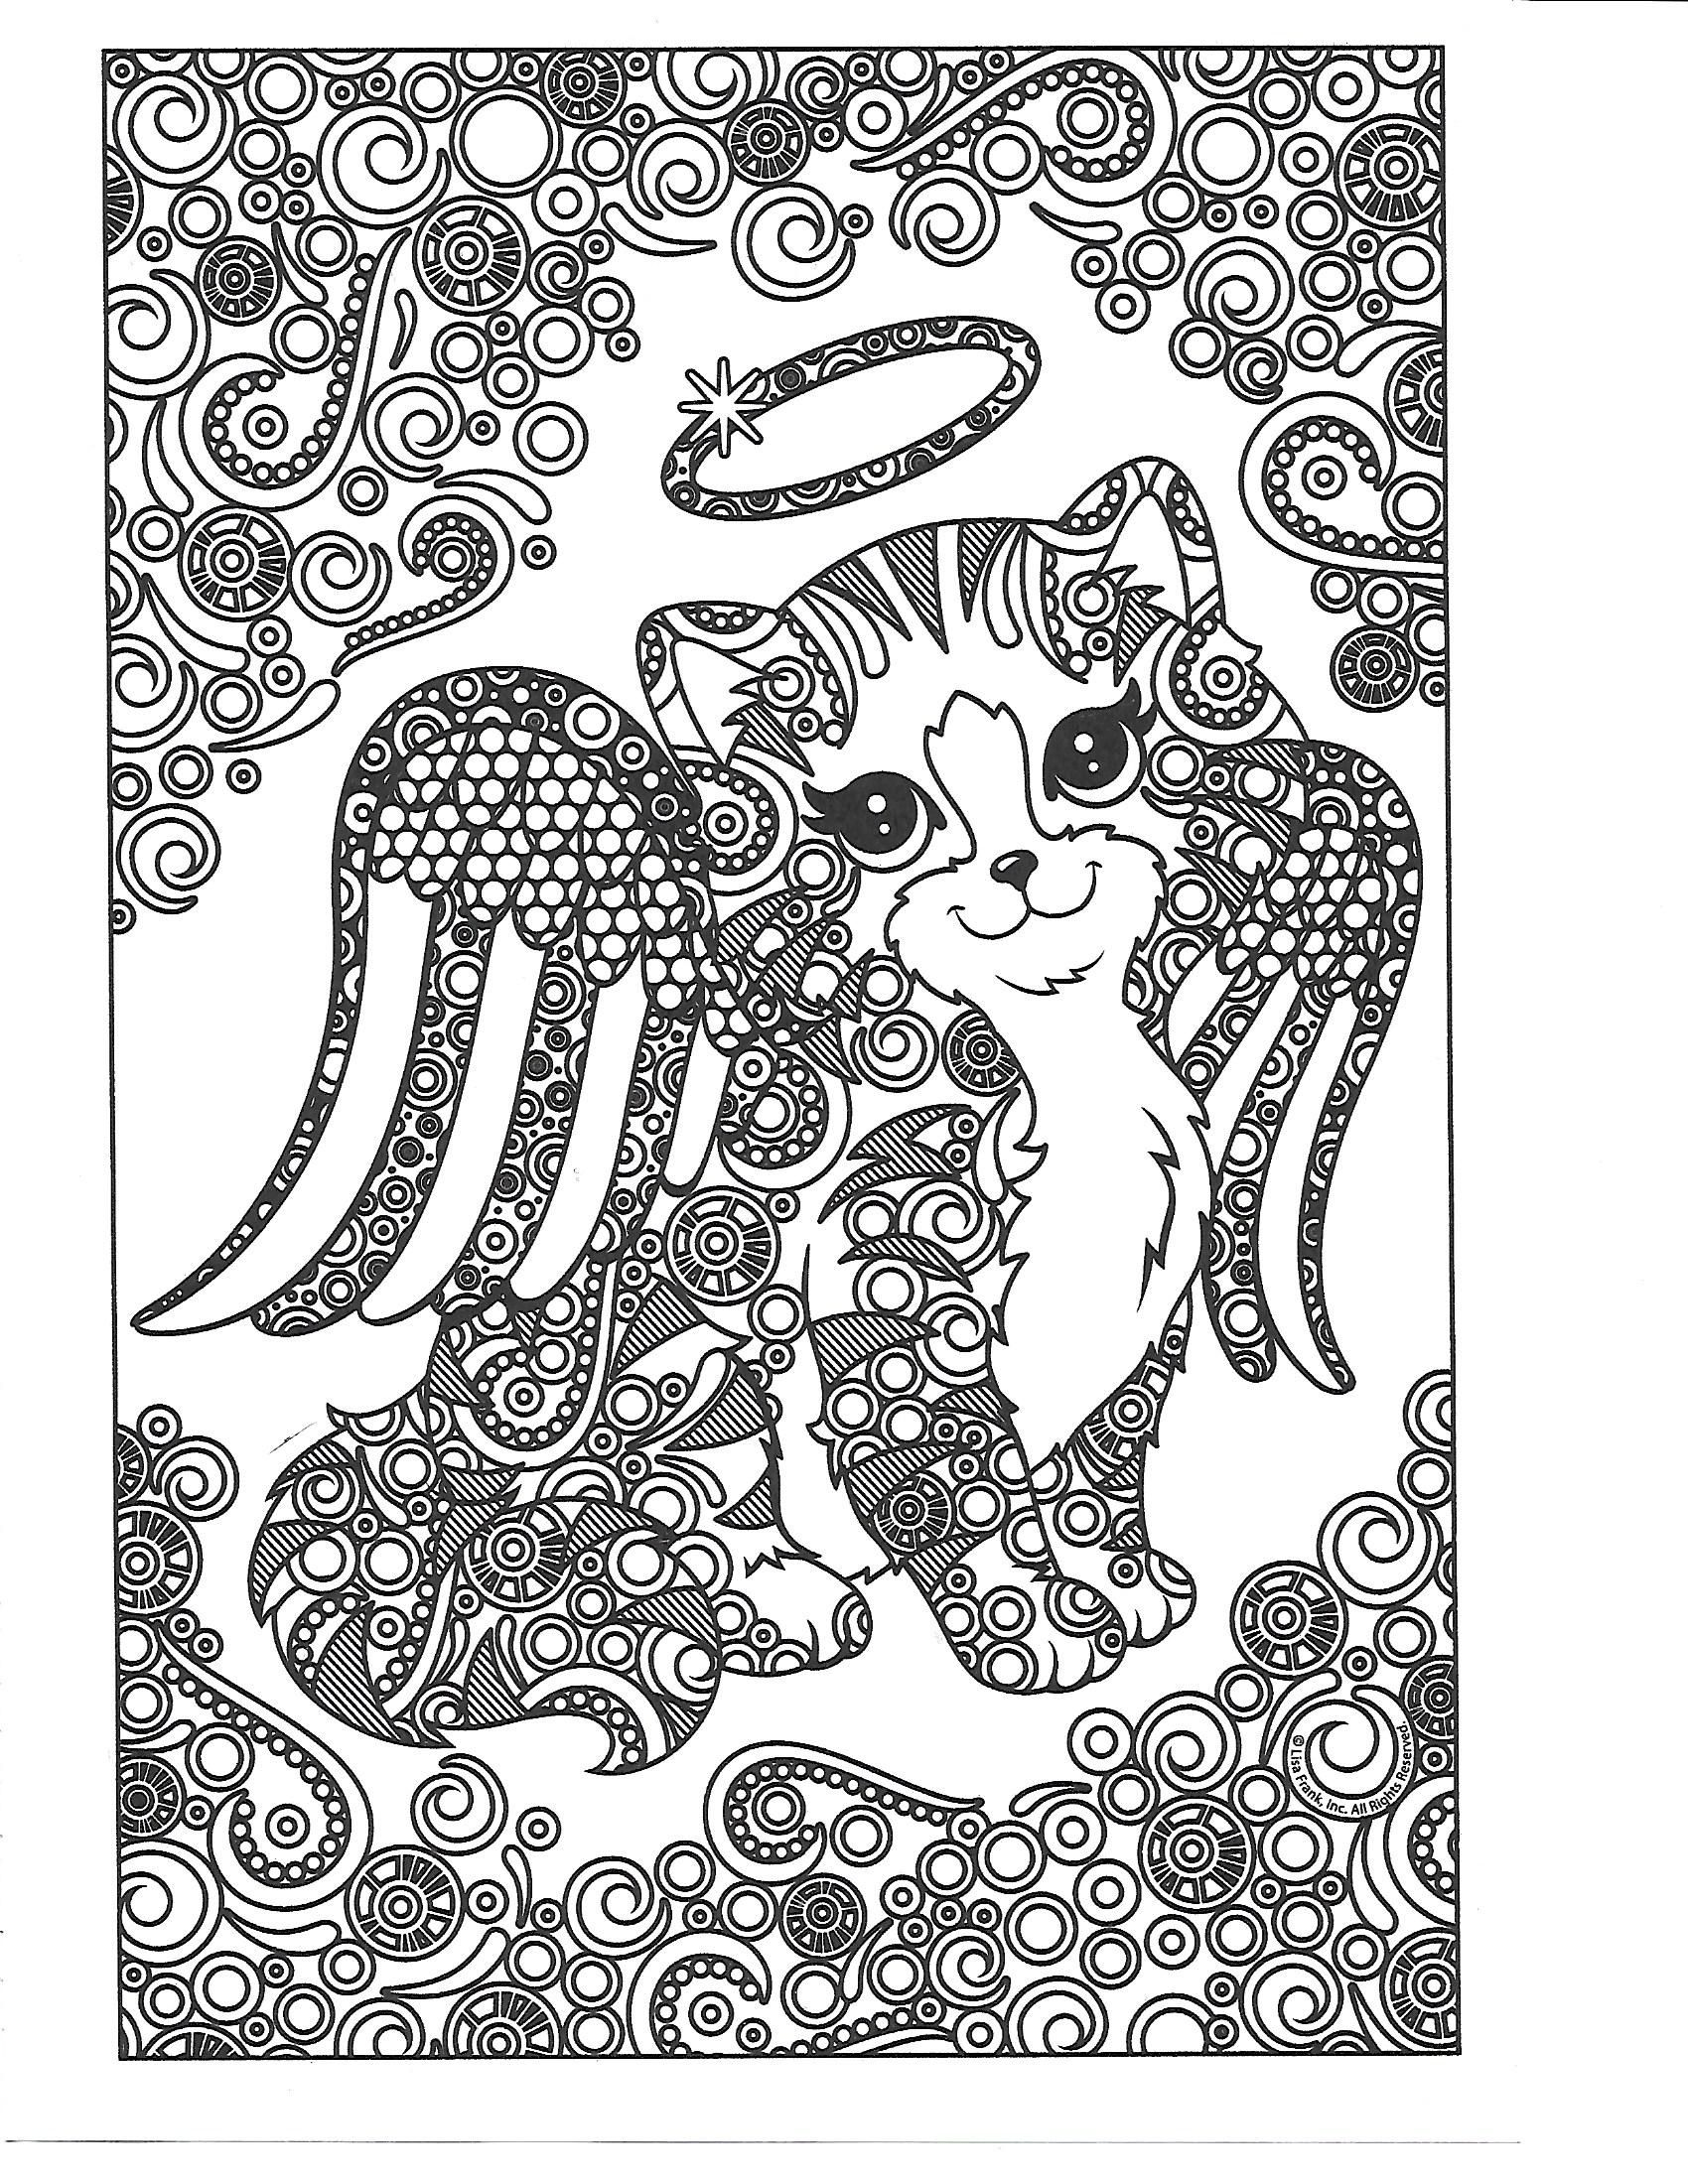 Pin By Beth Conroy On Color Cats Cat Coloring Page Lisa Frank Coloring Books Coloring Pages [ 2200 x 1700 Pixel ]